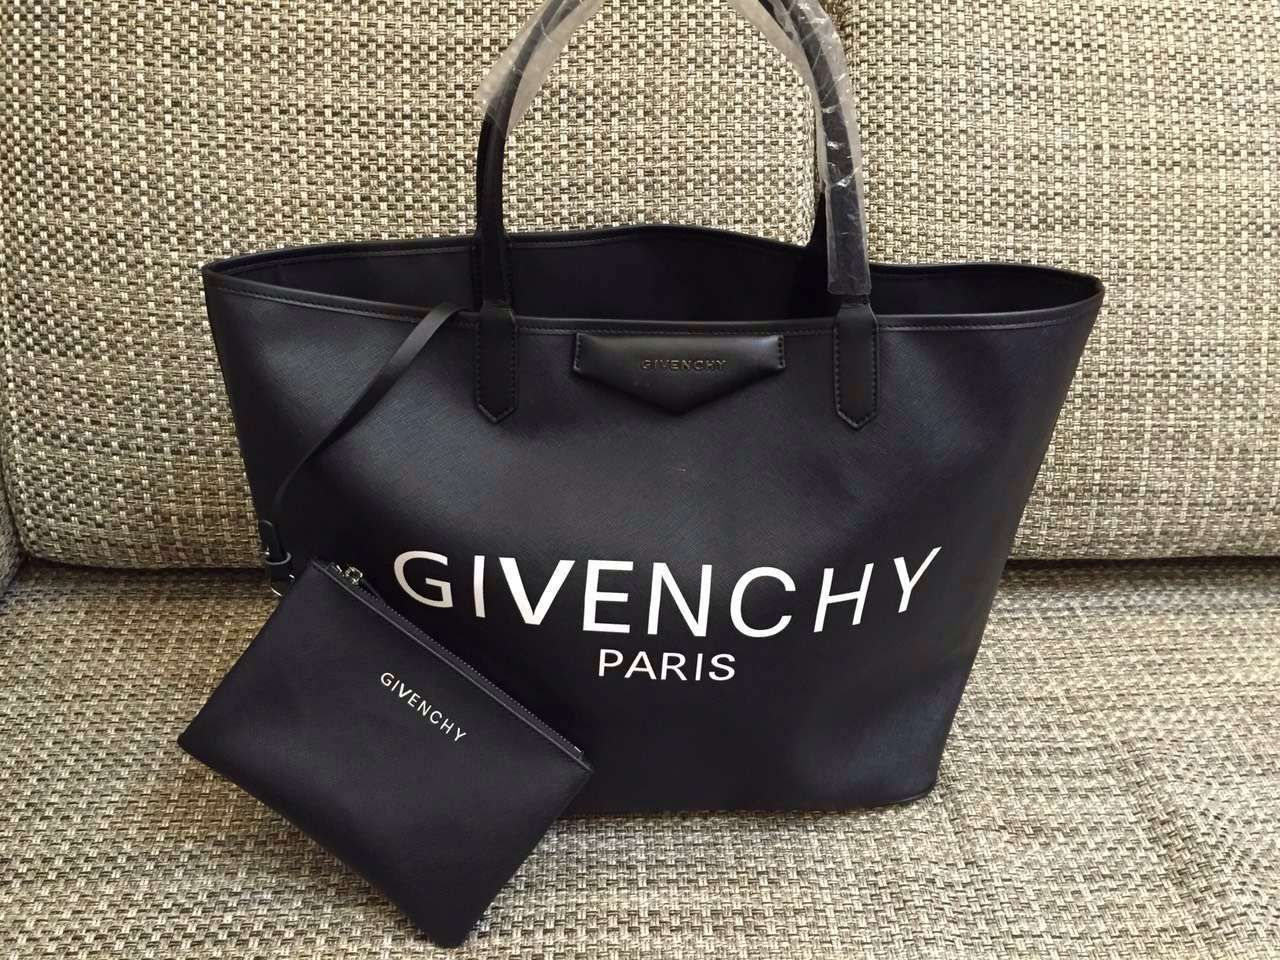 S S 2016 Givenchy Collection Outlet-Givenchy  Antigona  Givenchy Large  Slogan Print Shopping Tote f30a5d6980